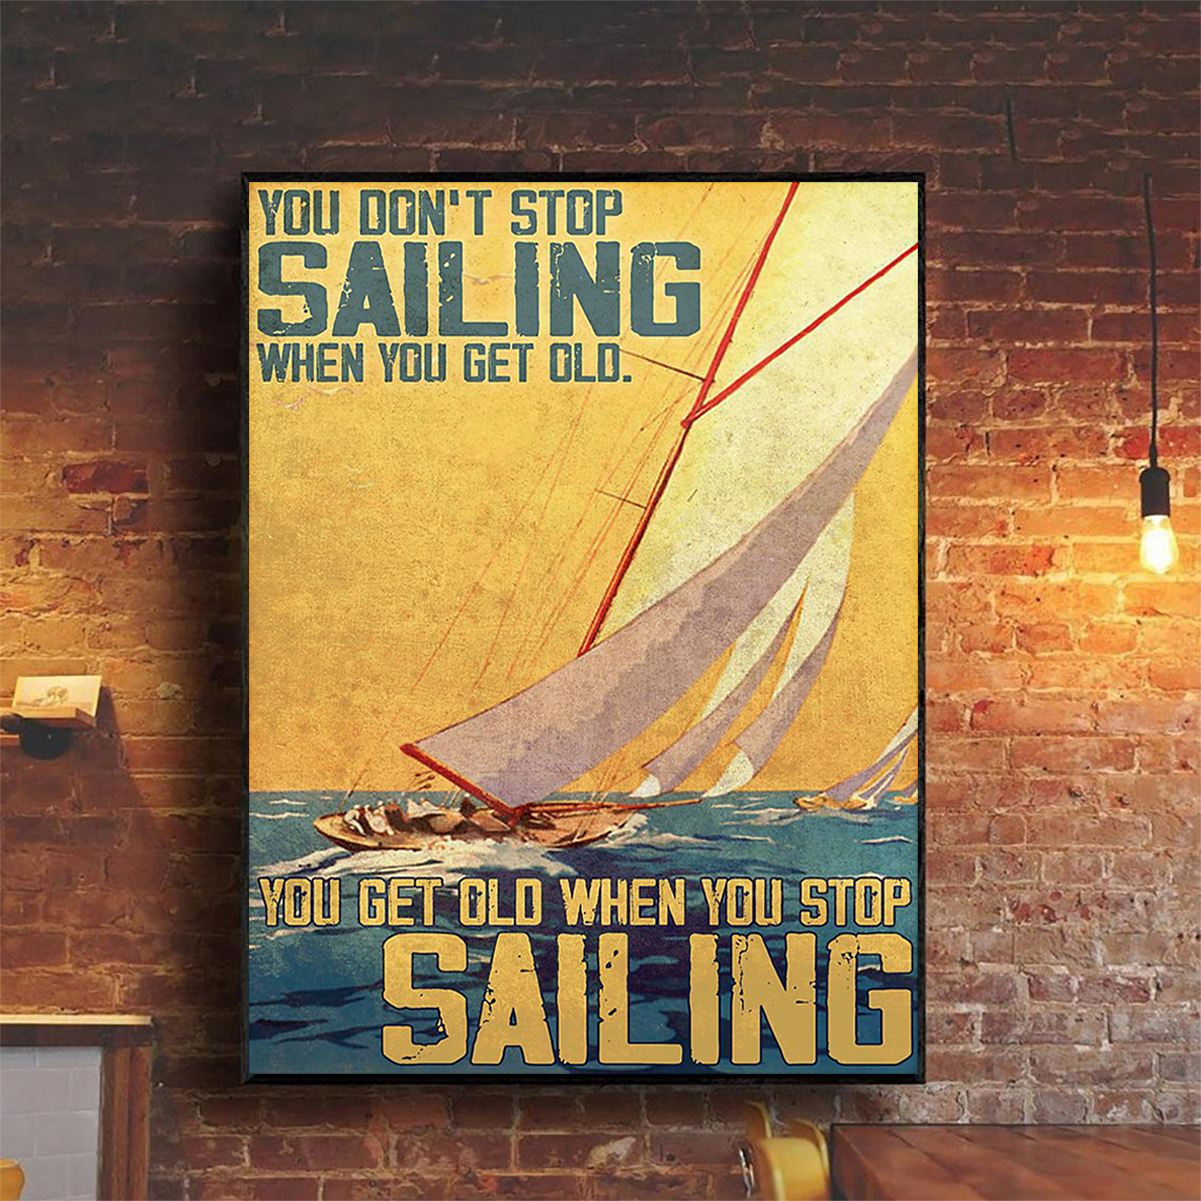 You don't stop sailing when you get old you get old when you stop sailing poster A2